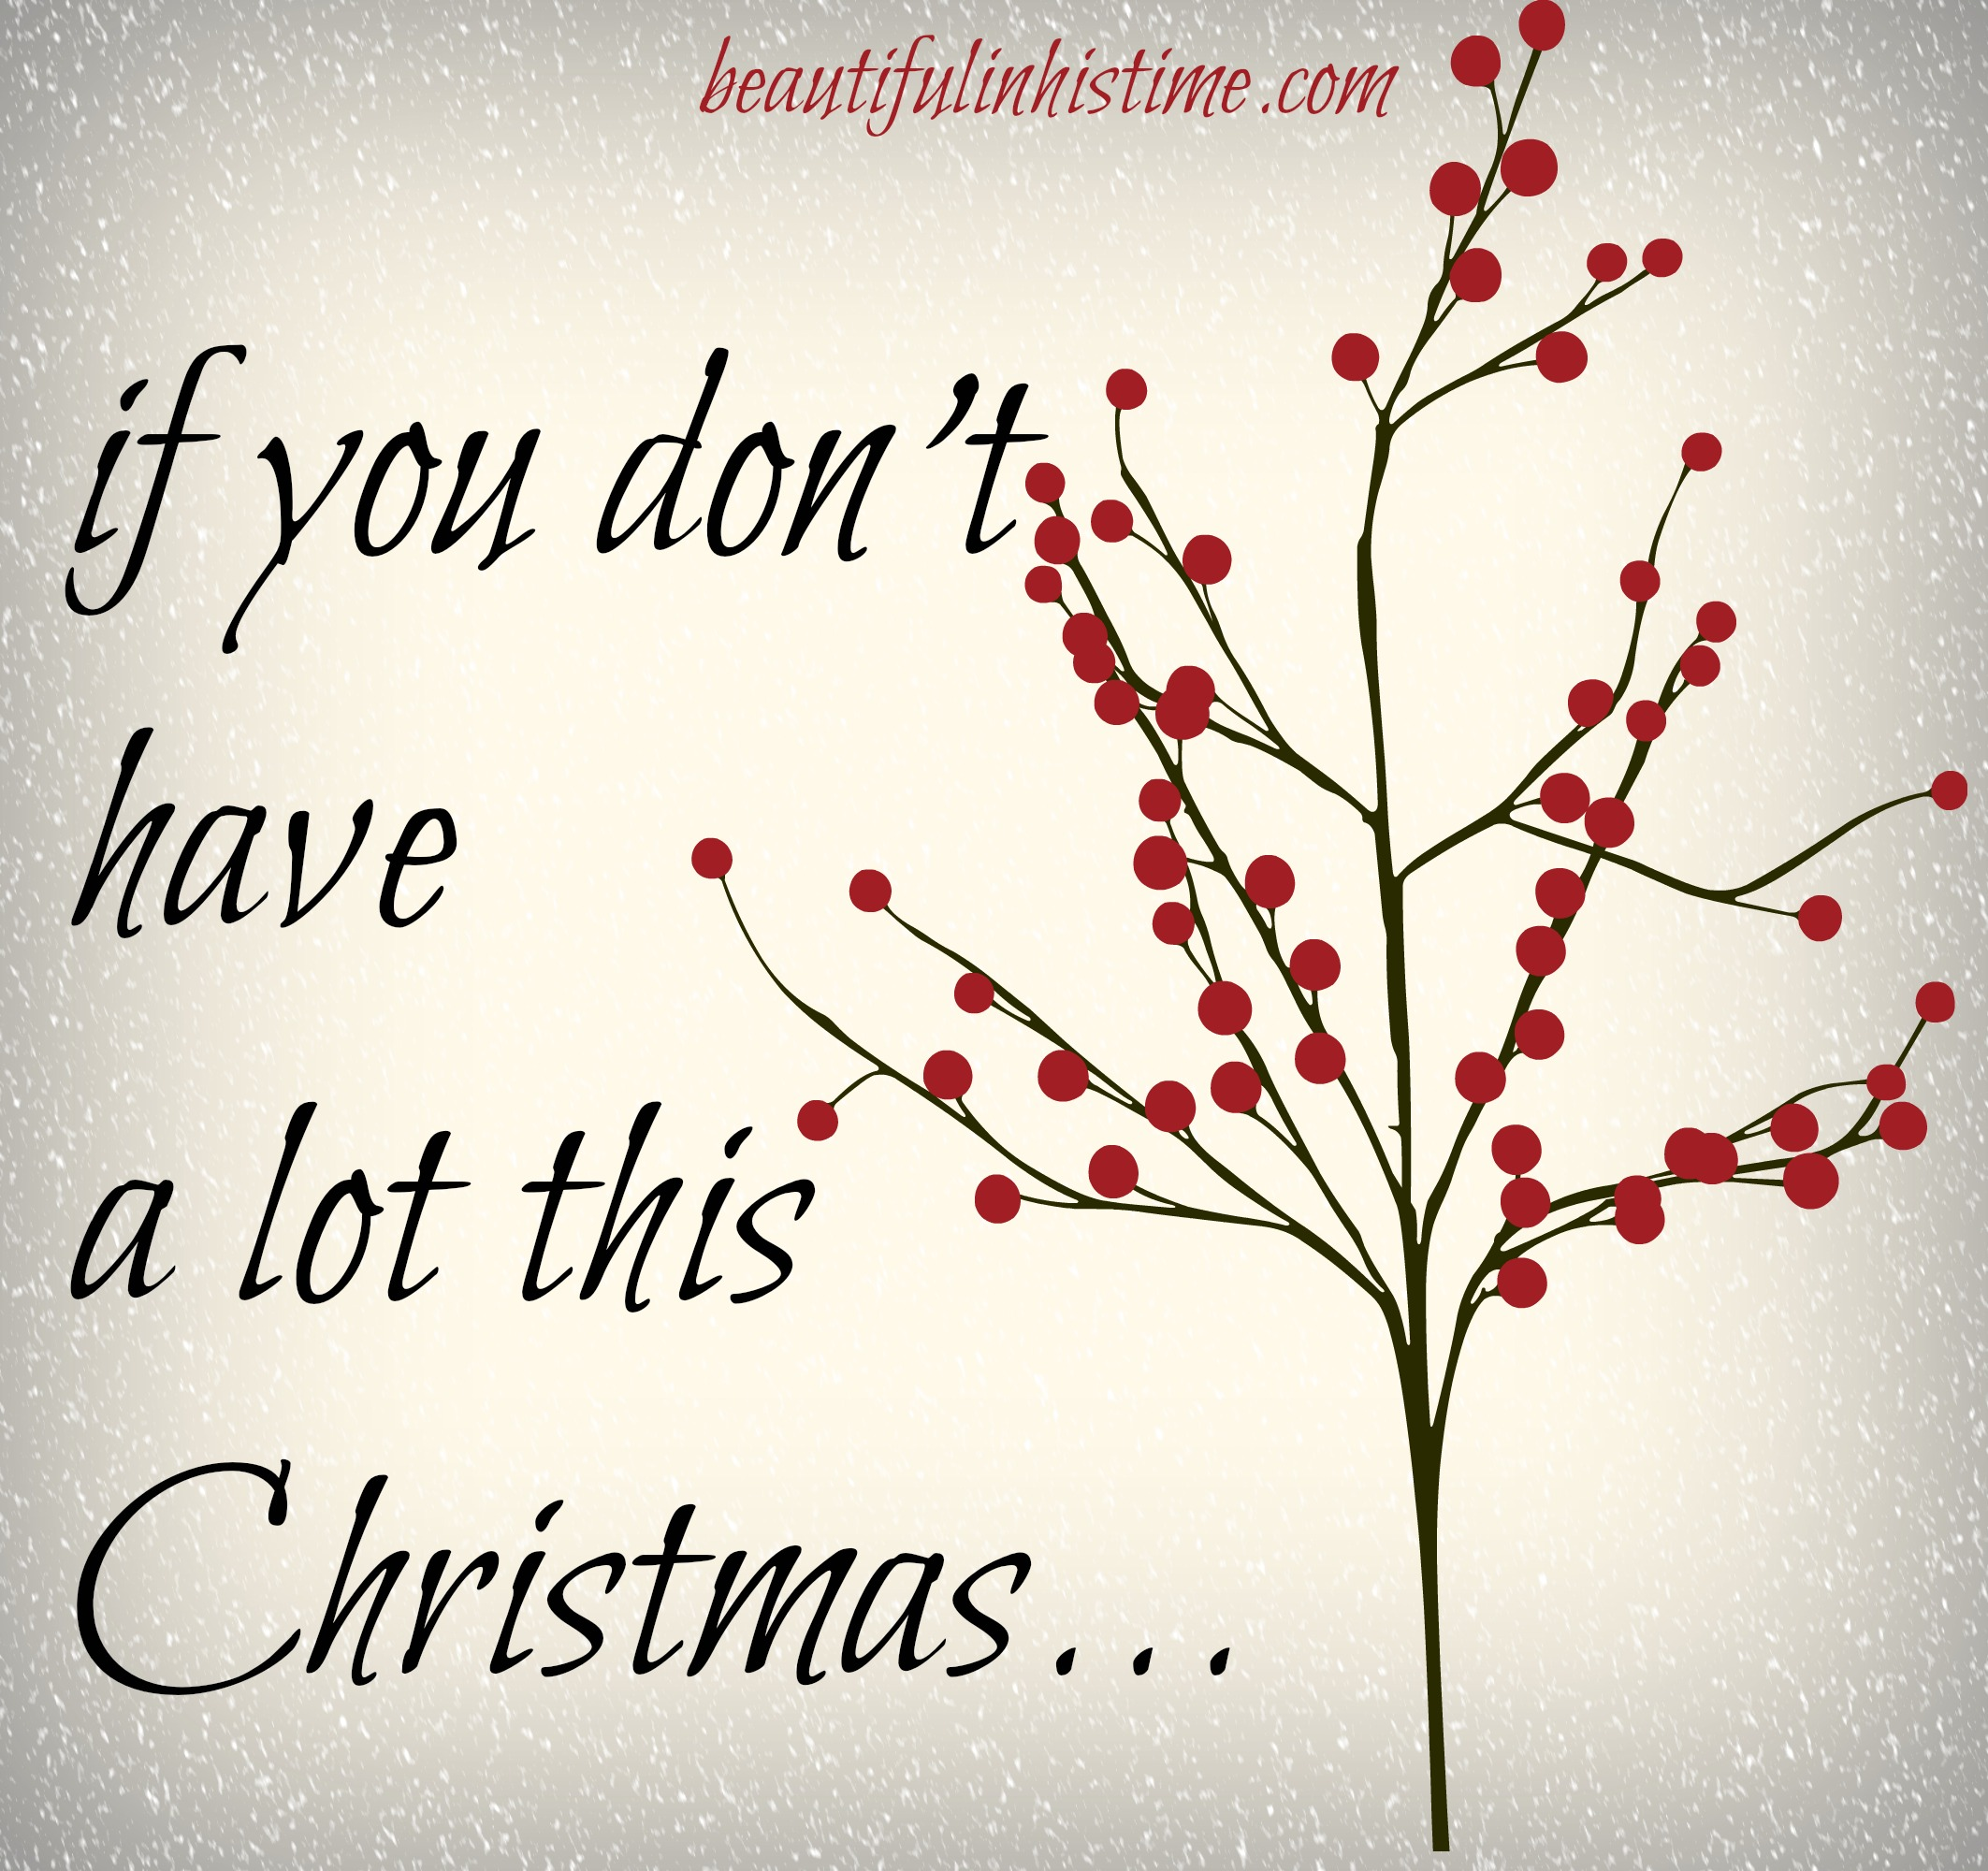 If you don't have a lot this Christmas...